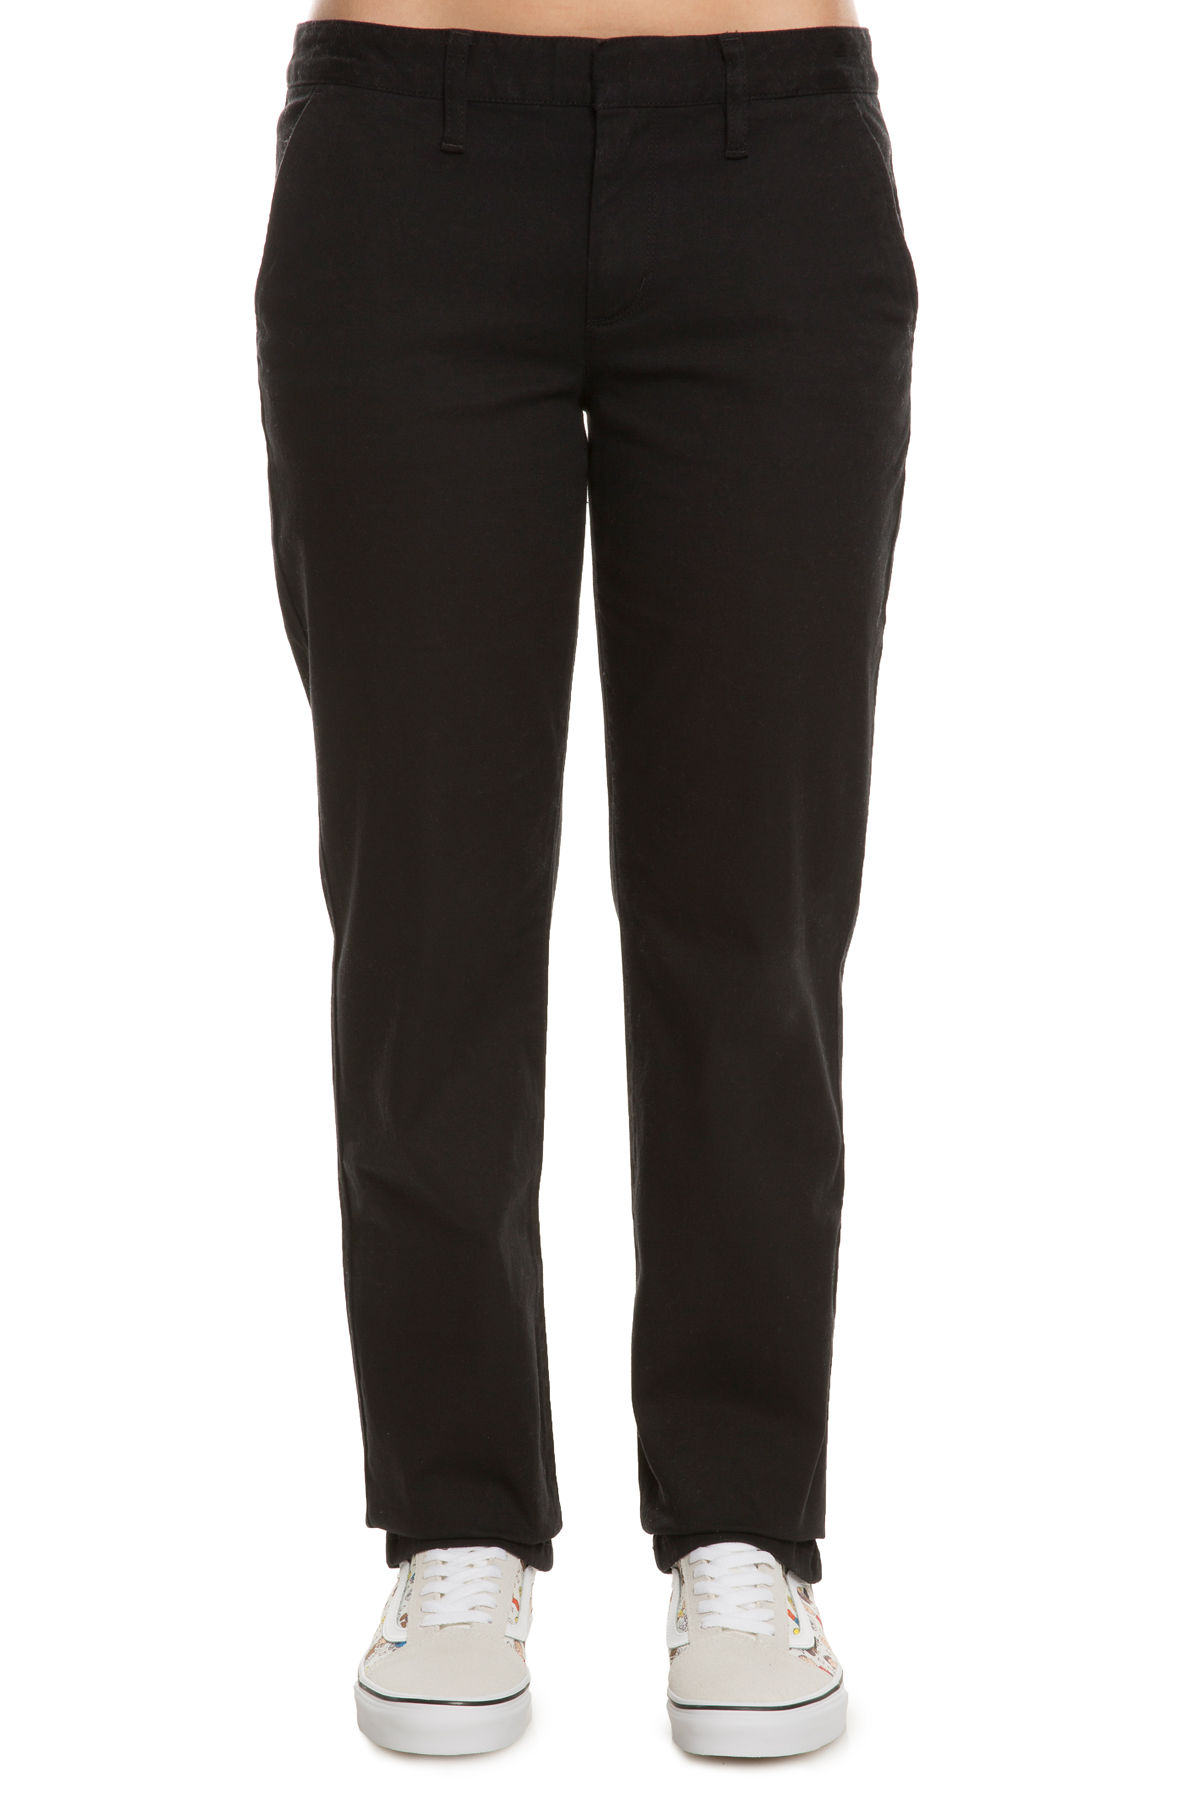 The Union Pant in Black